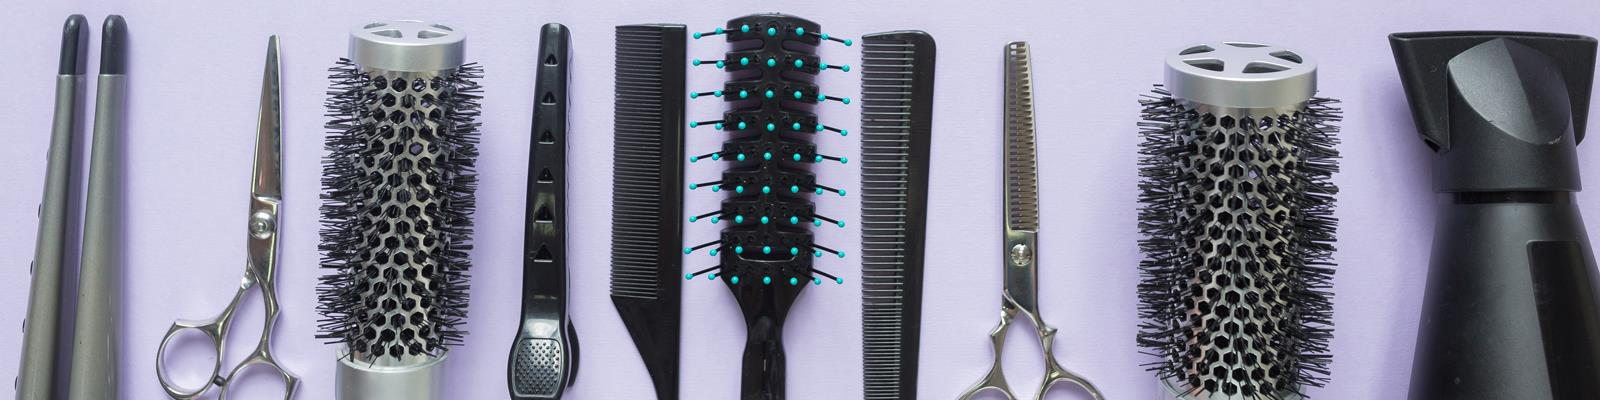 hairdressers tools - scissors, brush, comb, straighteners, hair dryer